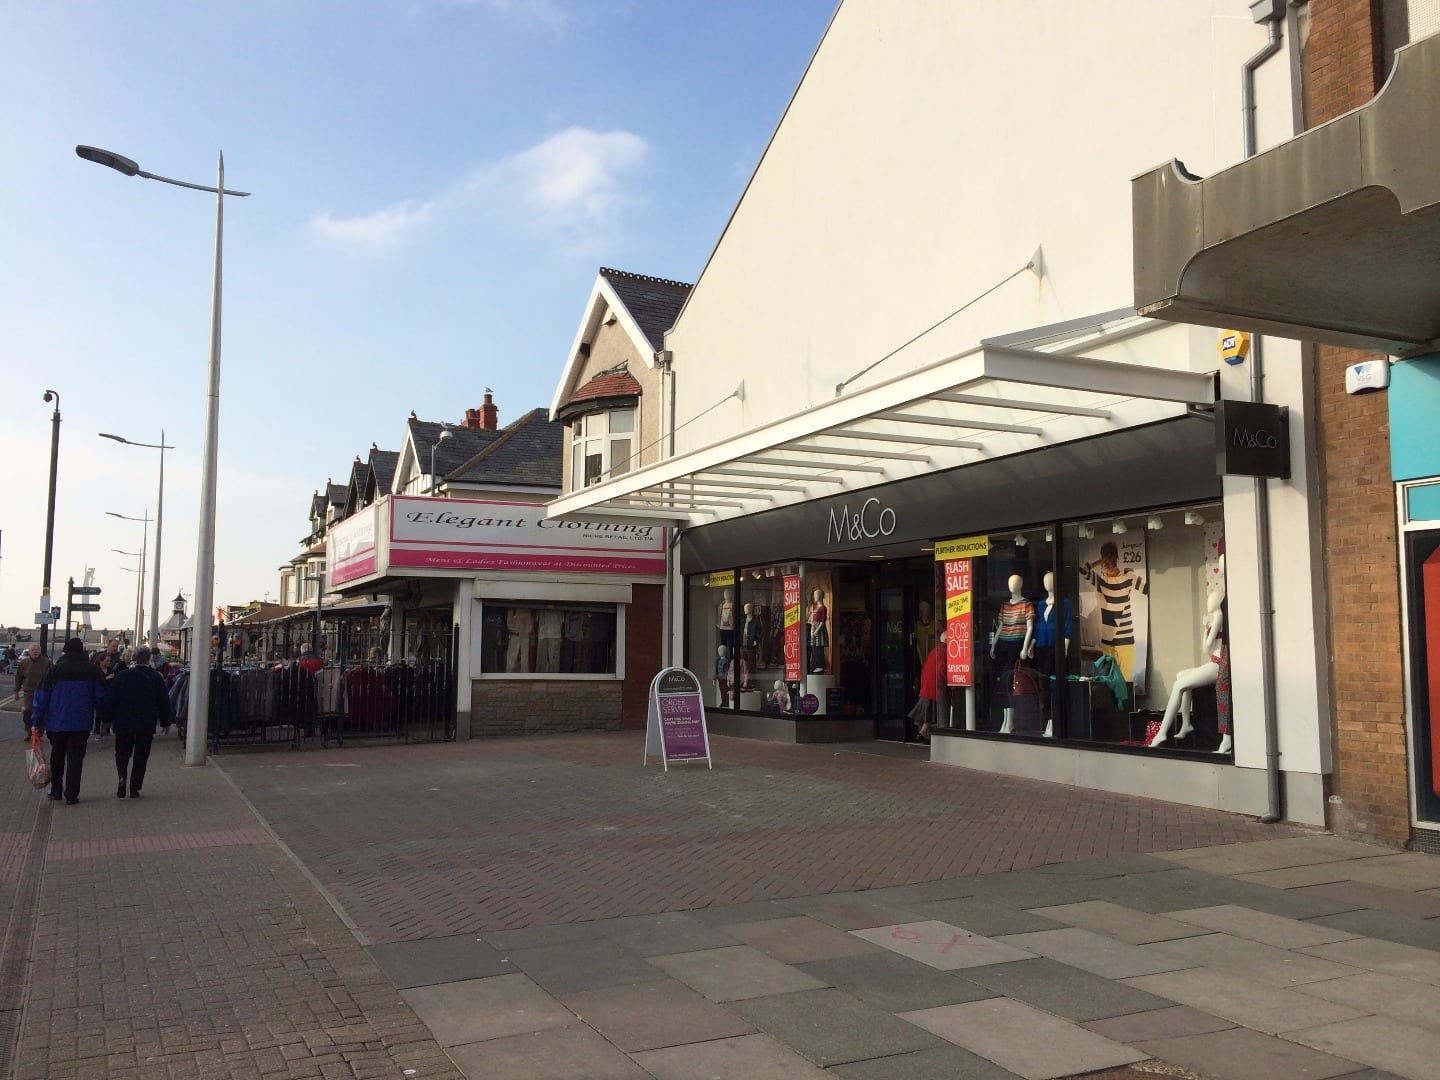 New M&Co store on Victoria Road West Cleveleys